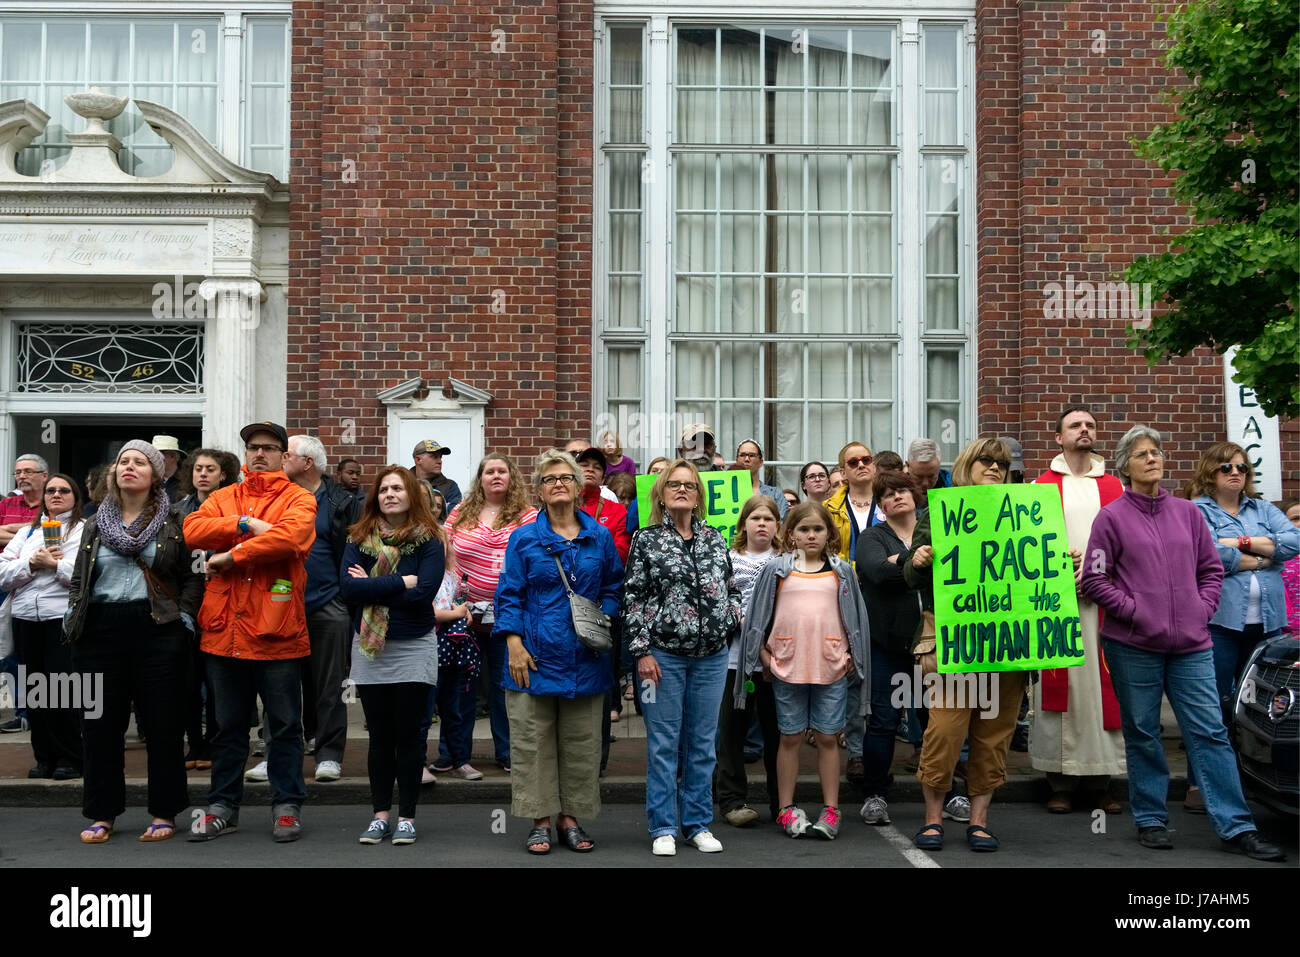 Lancaster, PA, USA - May 20, 2017; Activists and community members gather at the courthouse steps, in Lancaster, - Stock Image